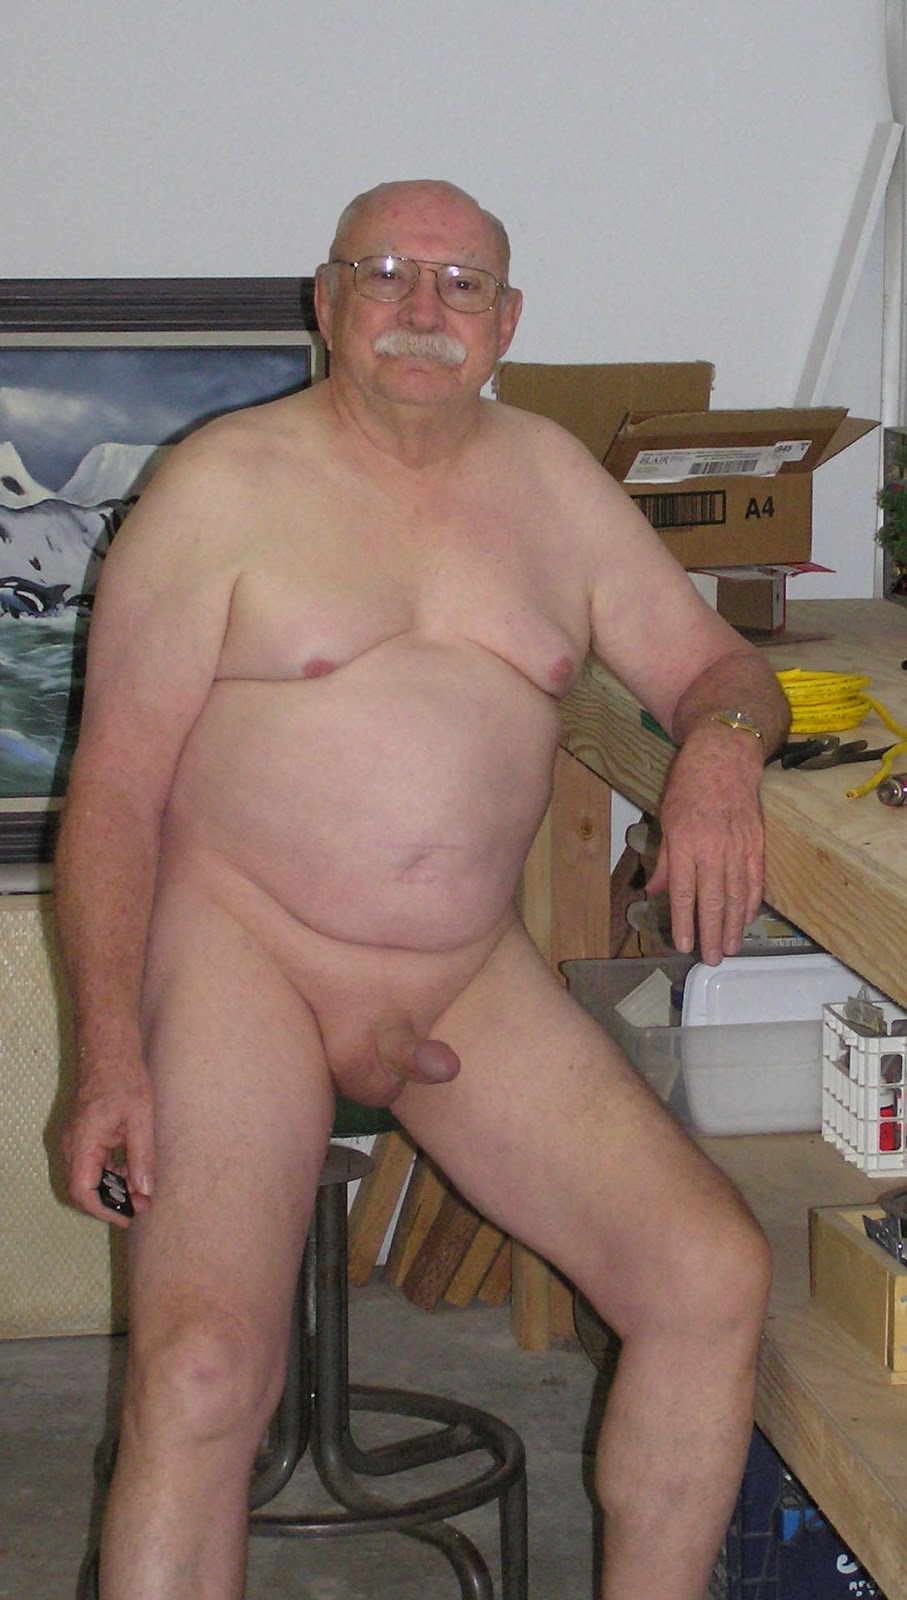 Naked Hairy Grandpa Ideal gay nudist porn free - pics and galleries